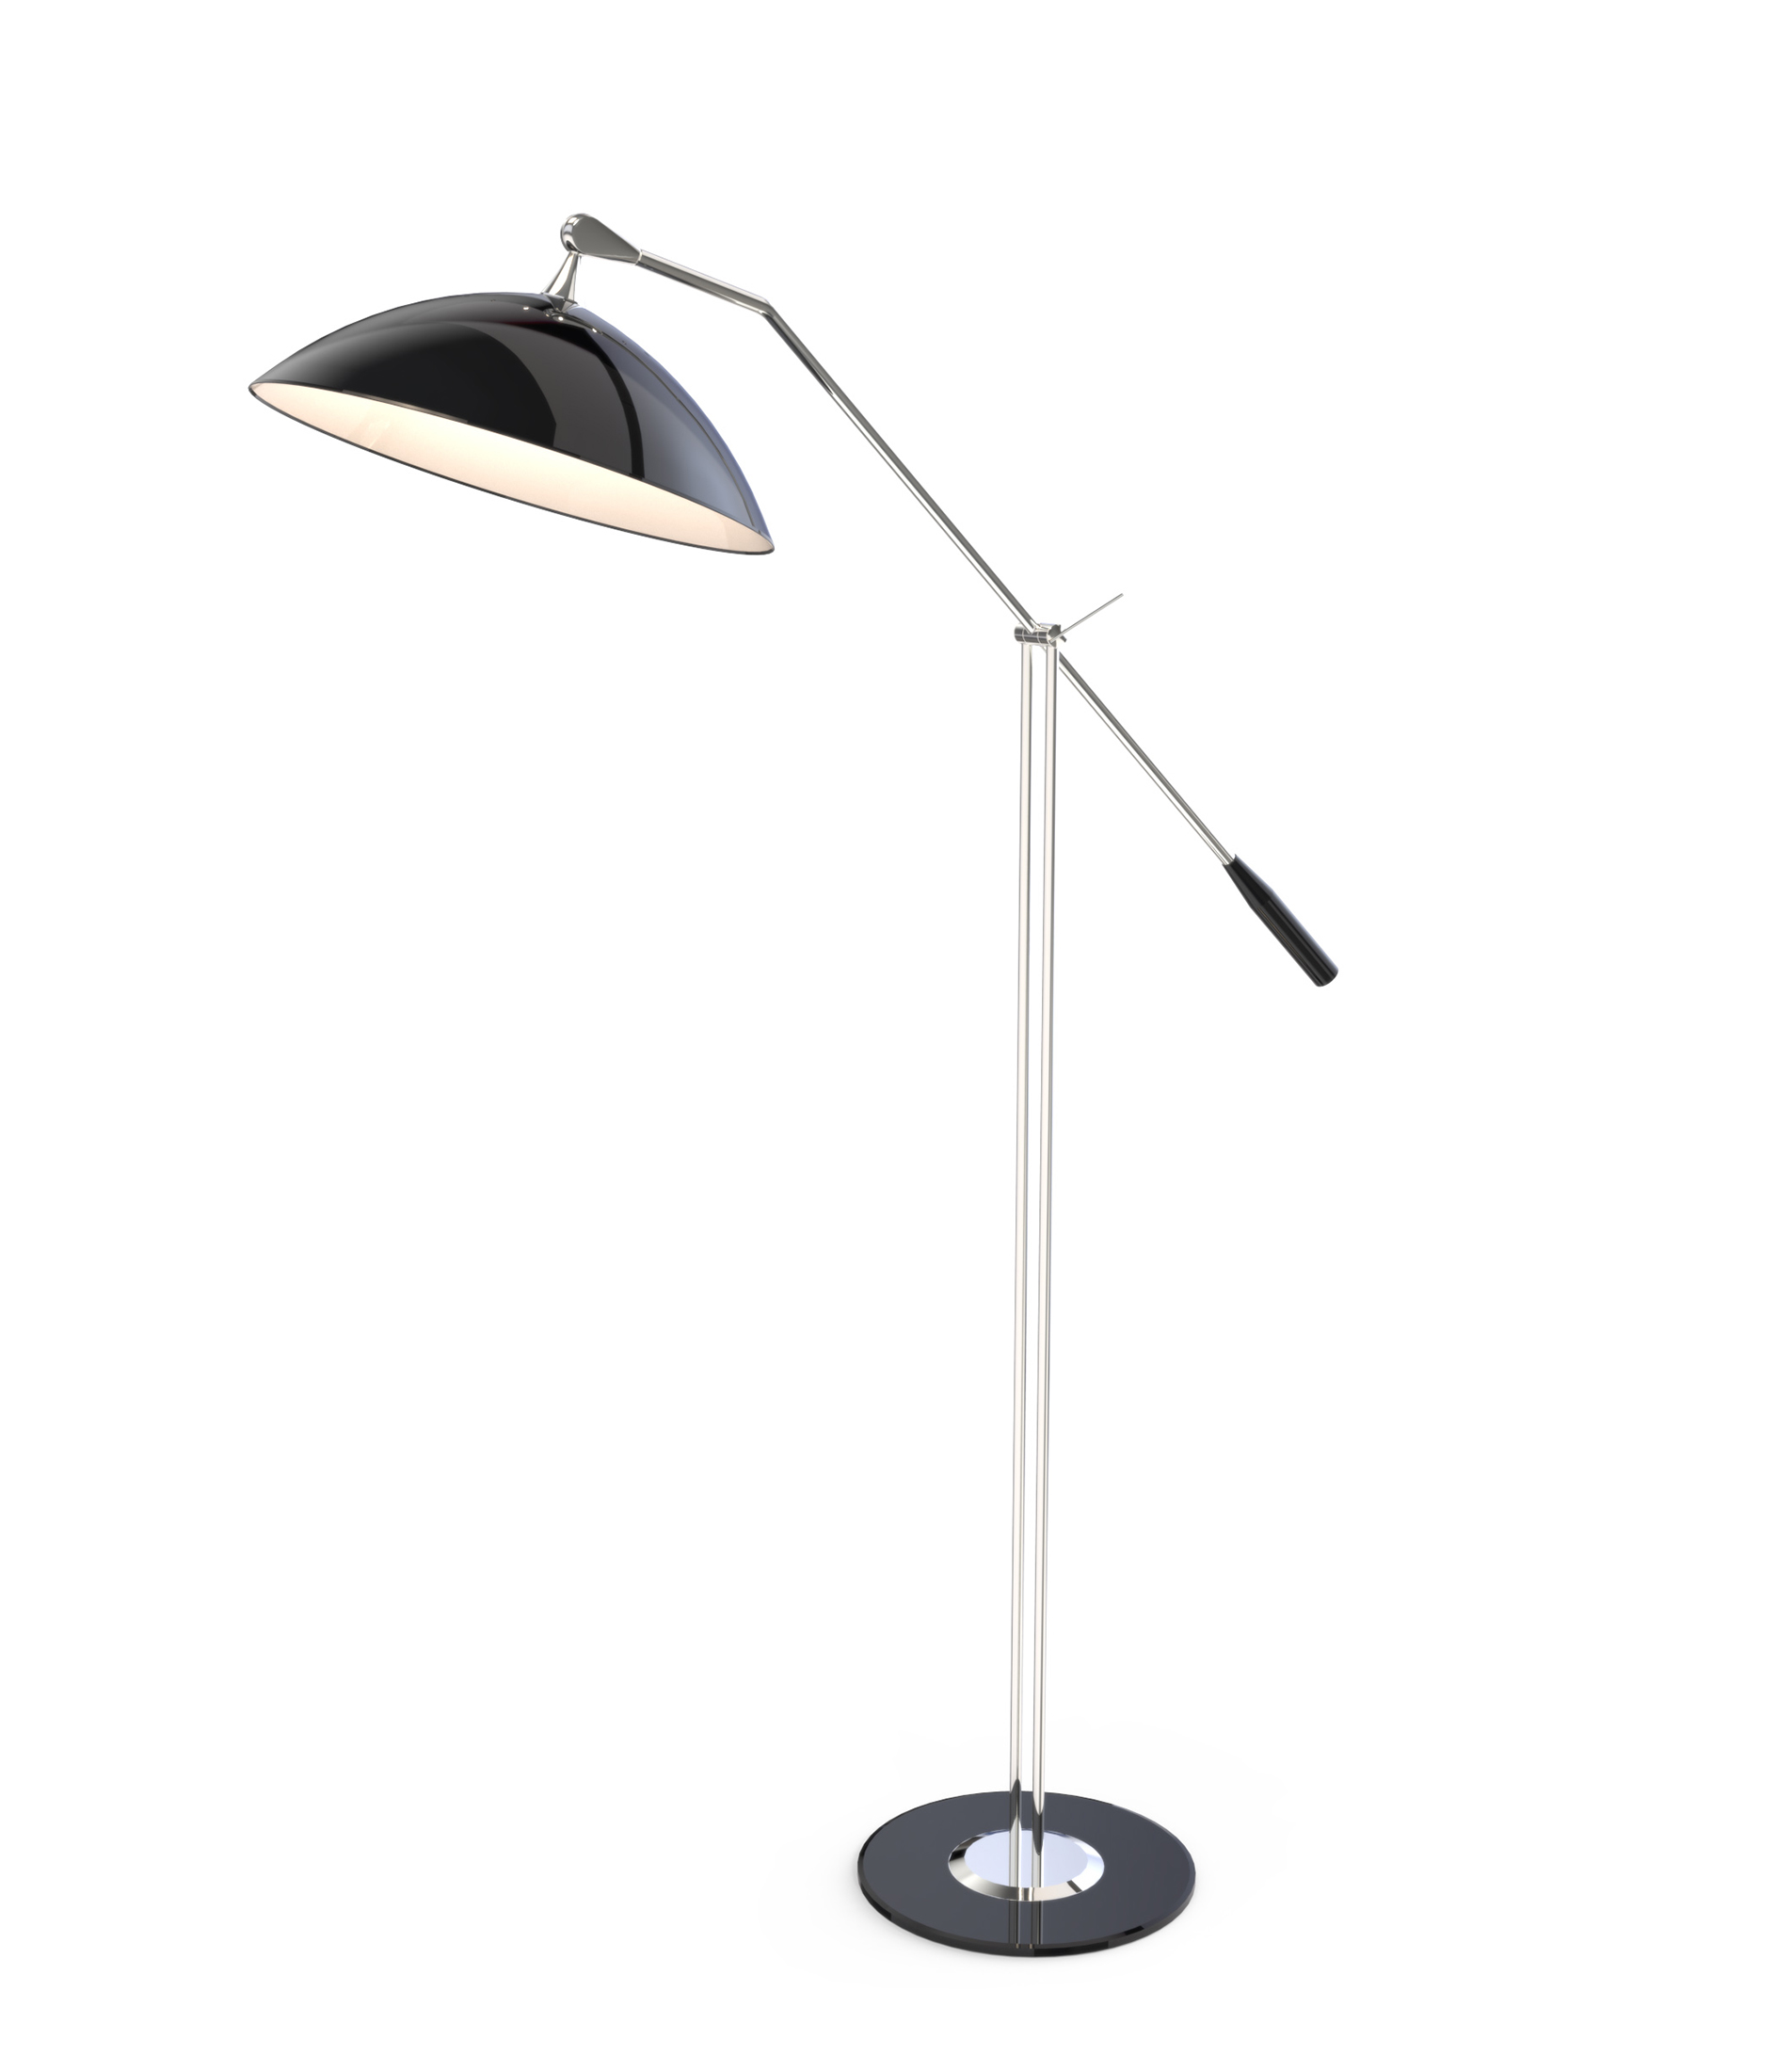 bk lamp lamps blu image dot note black modern with previous floor table